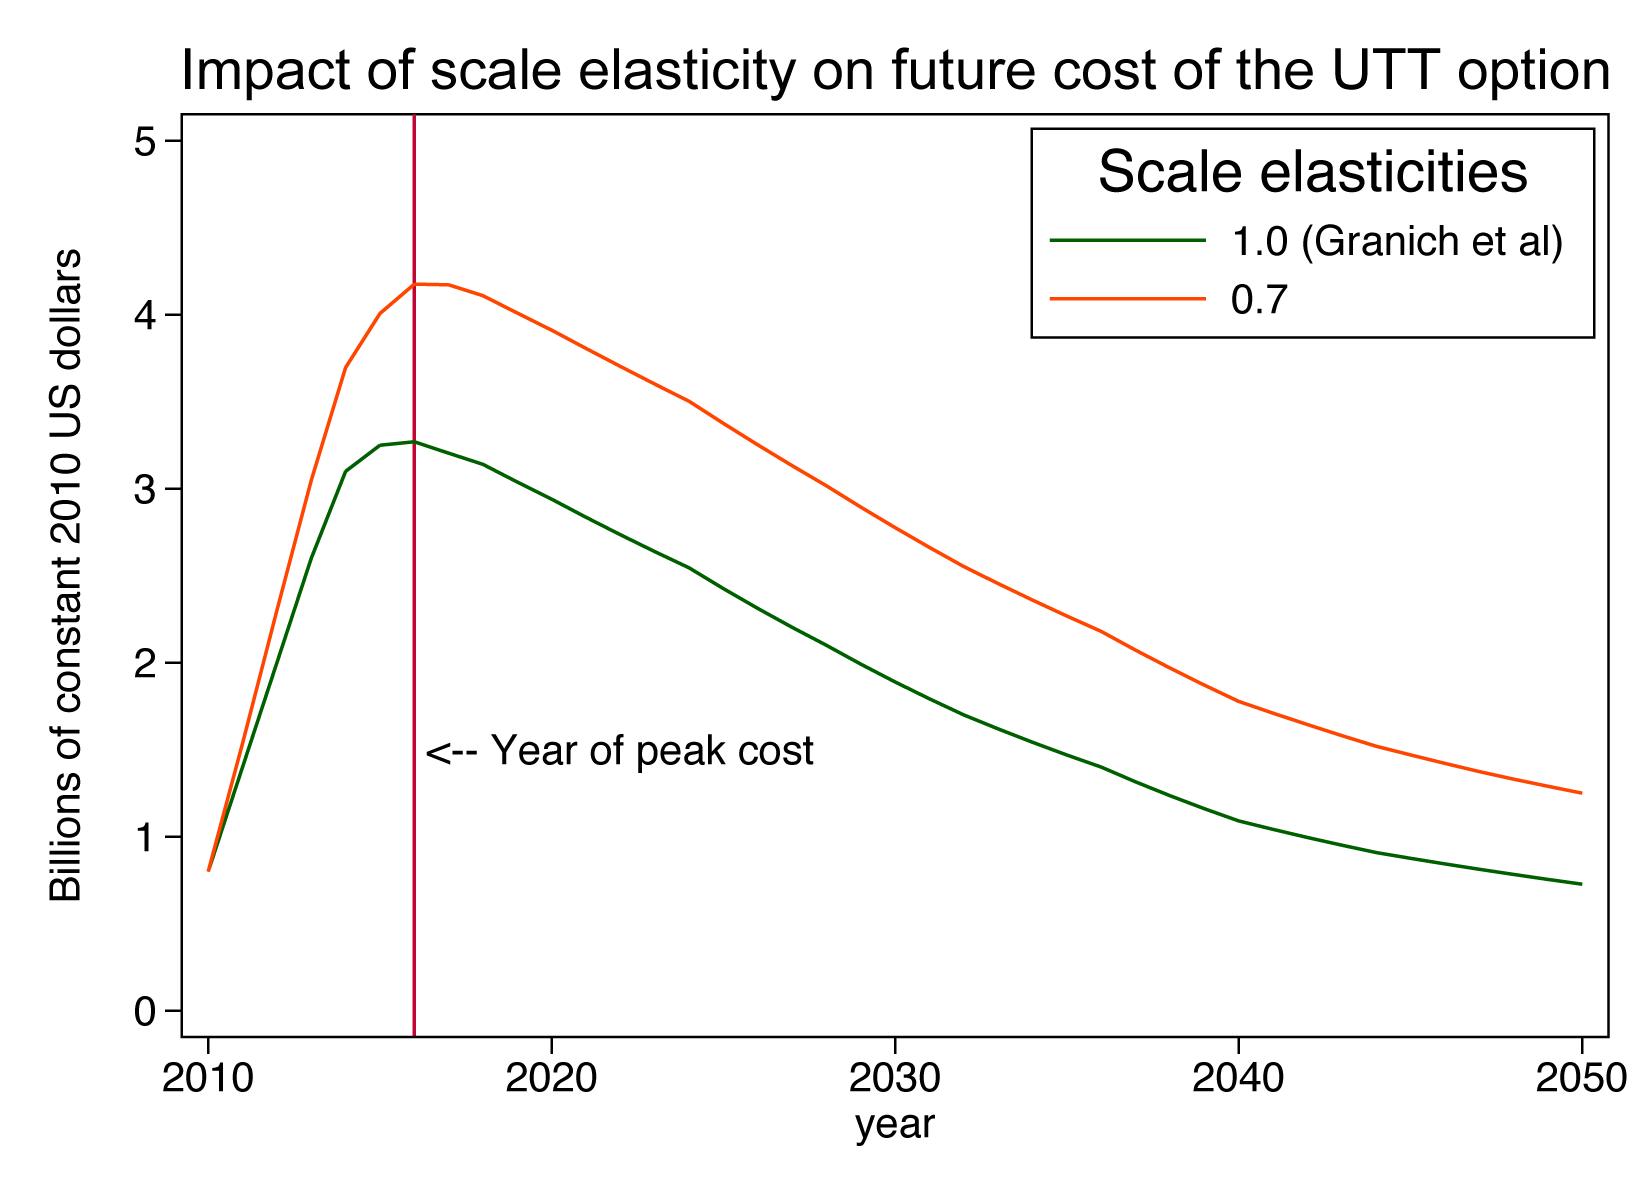 Impact of scale elasticity on future cost of a universal test-and-treat strategy in South Africa.